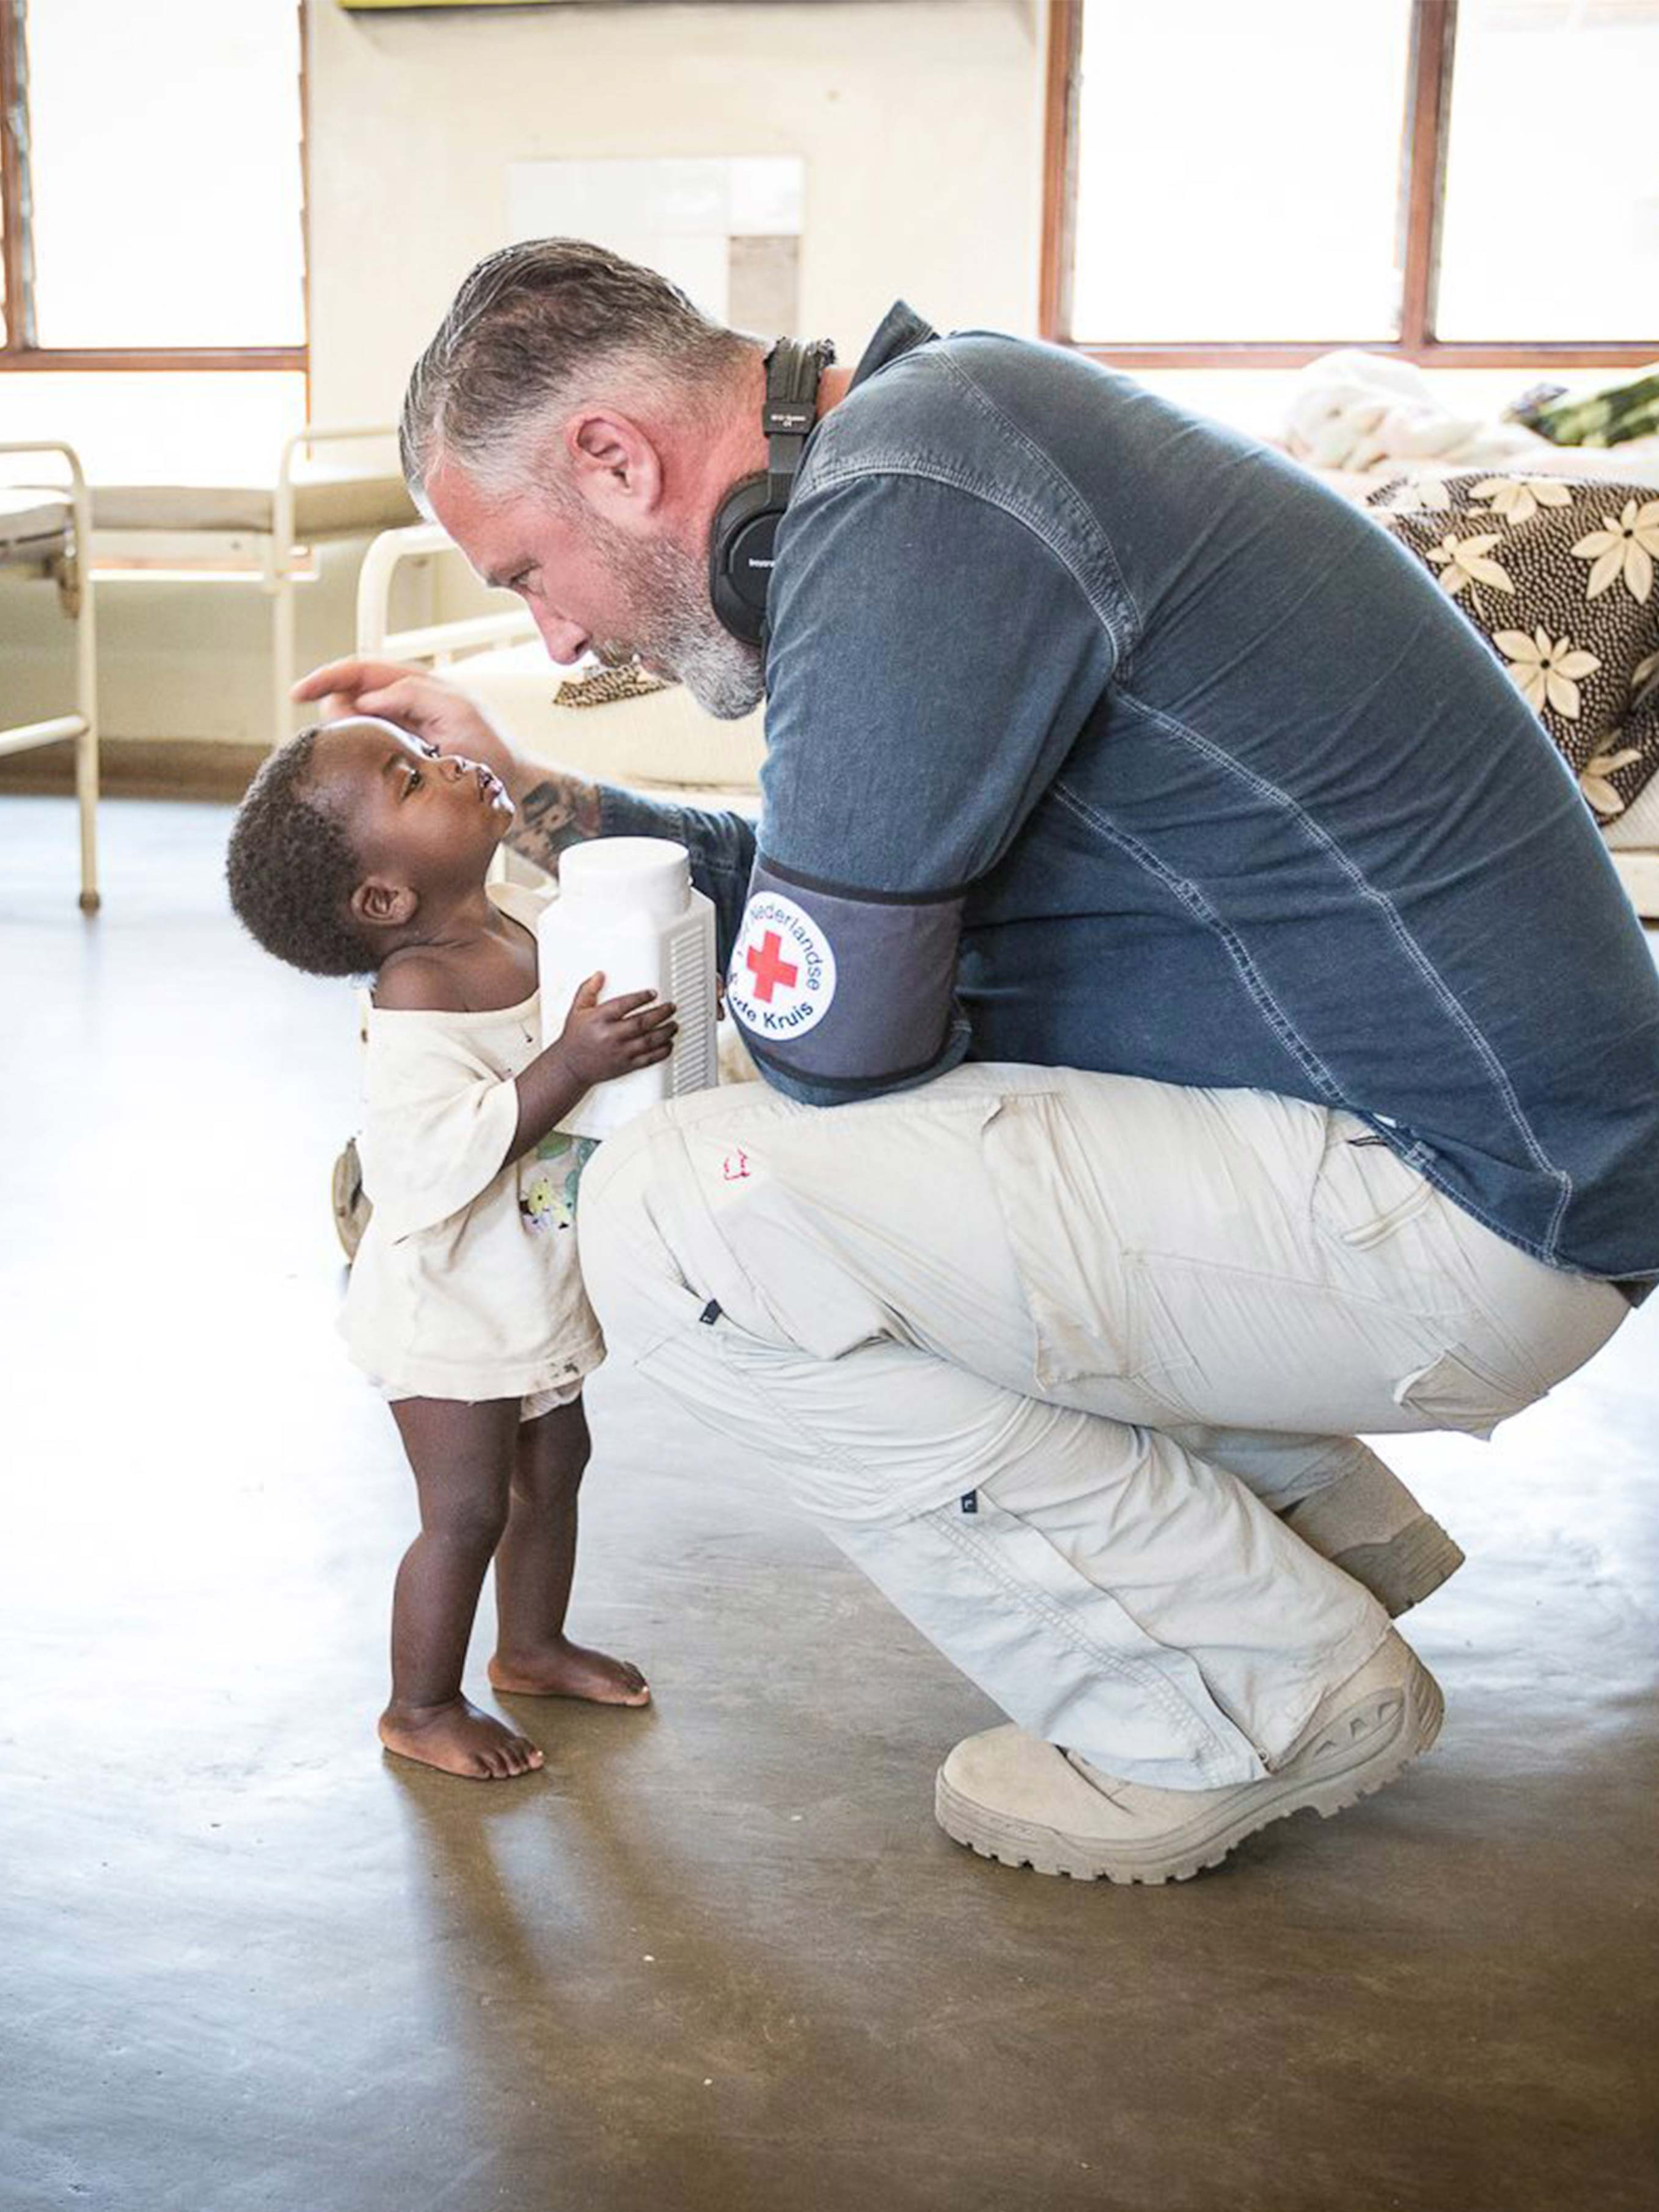 Male charity worker with young child